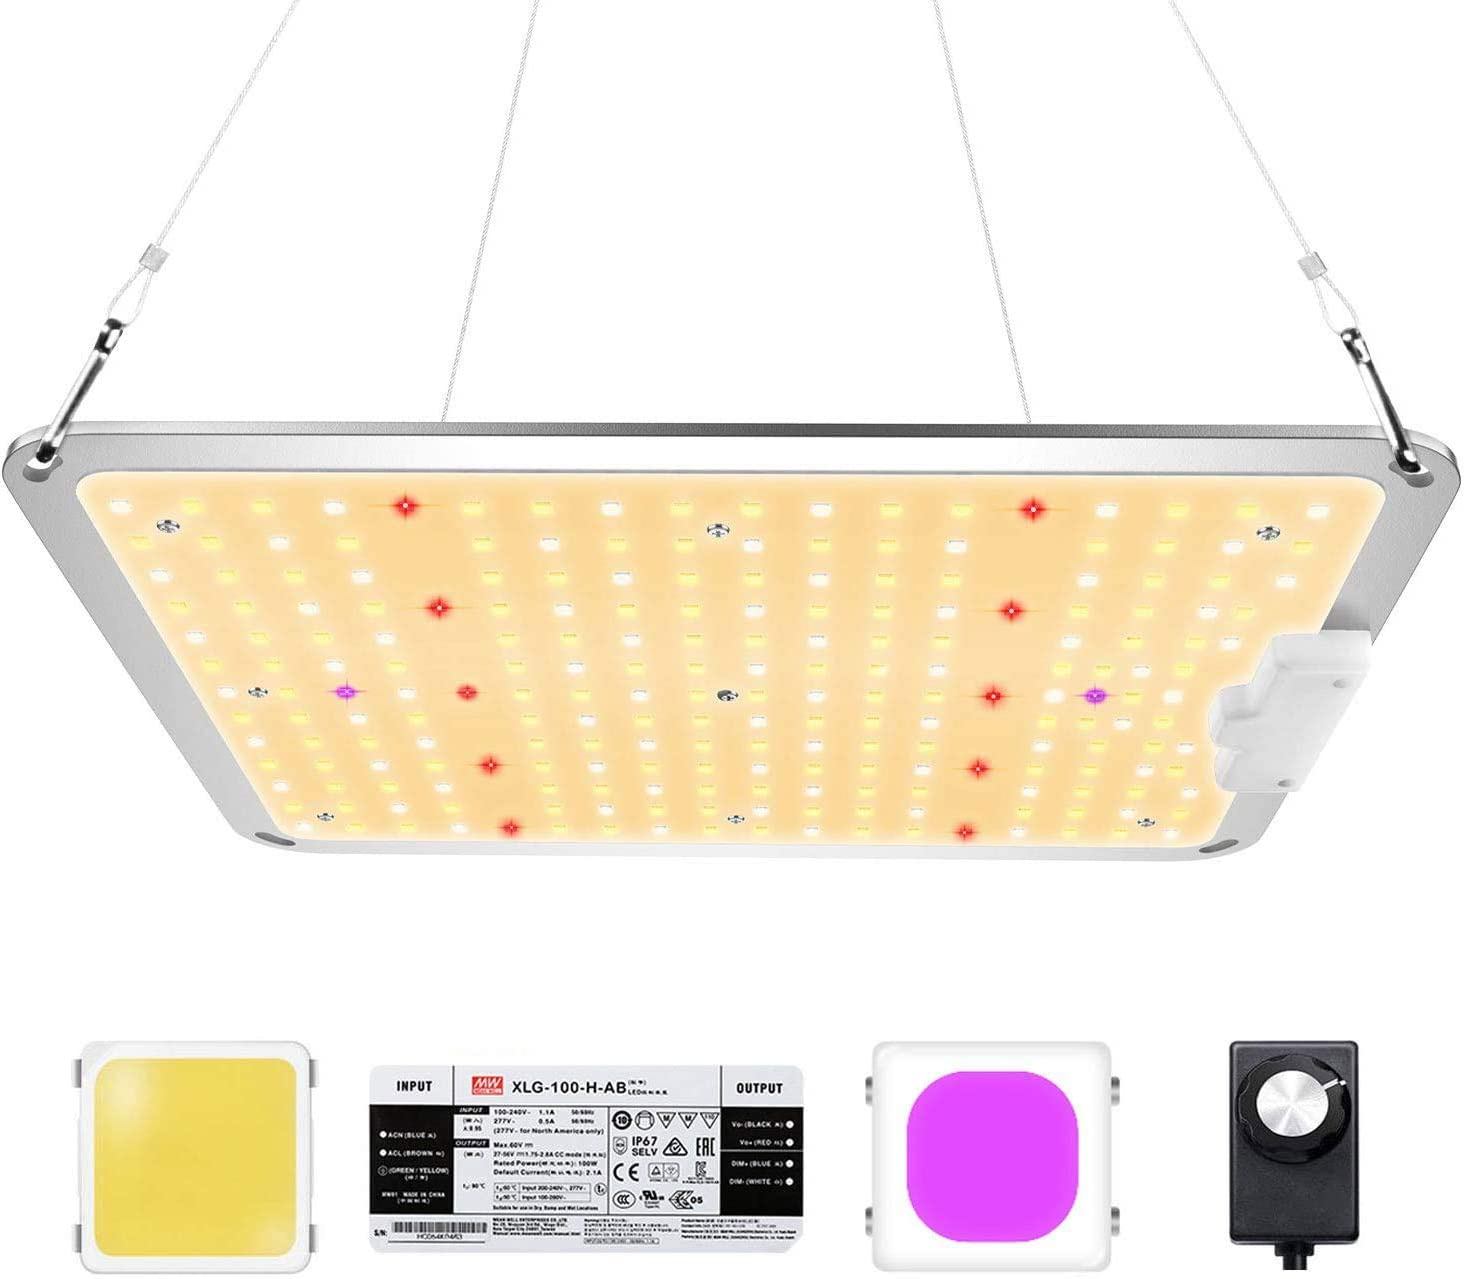 Zannaki ZK-1000 LED Grow Light, LM301B Doides MeanWell Driver, Sun Spectrum Plants Lamp with Upgraded Dimmer Control UV LEDs for Indoor Veg Flower Growing